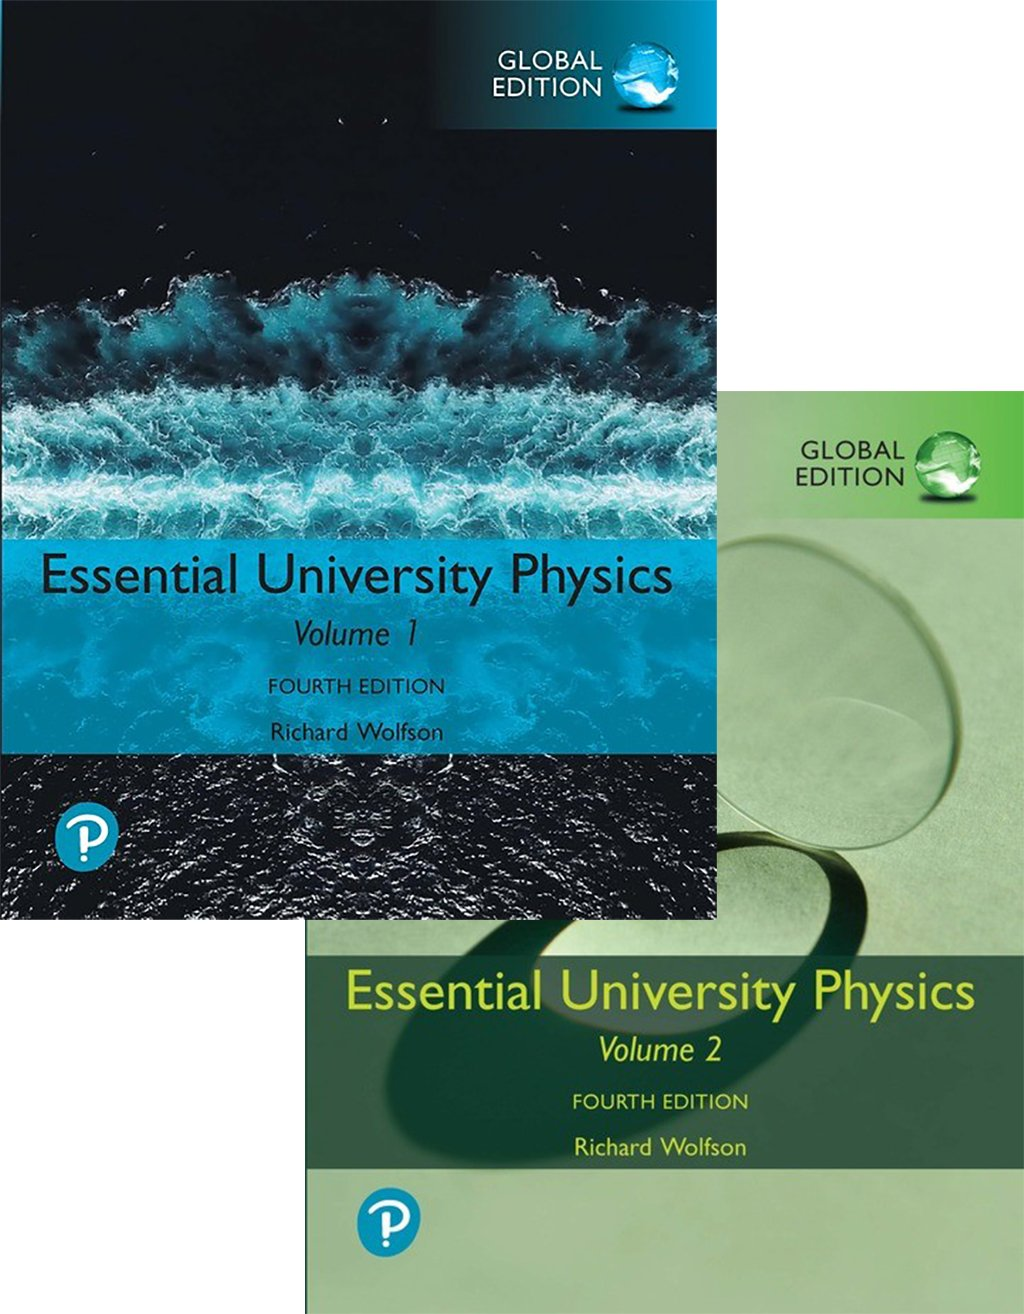 Essential University Physics: Volume 1 & 2 pack, Global Edition, 4th Edition